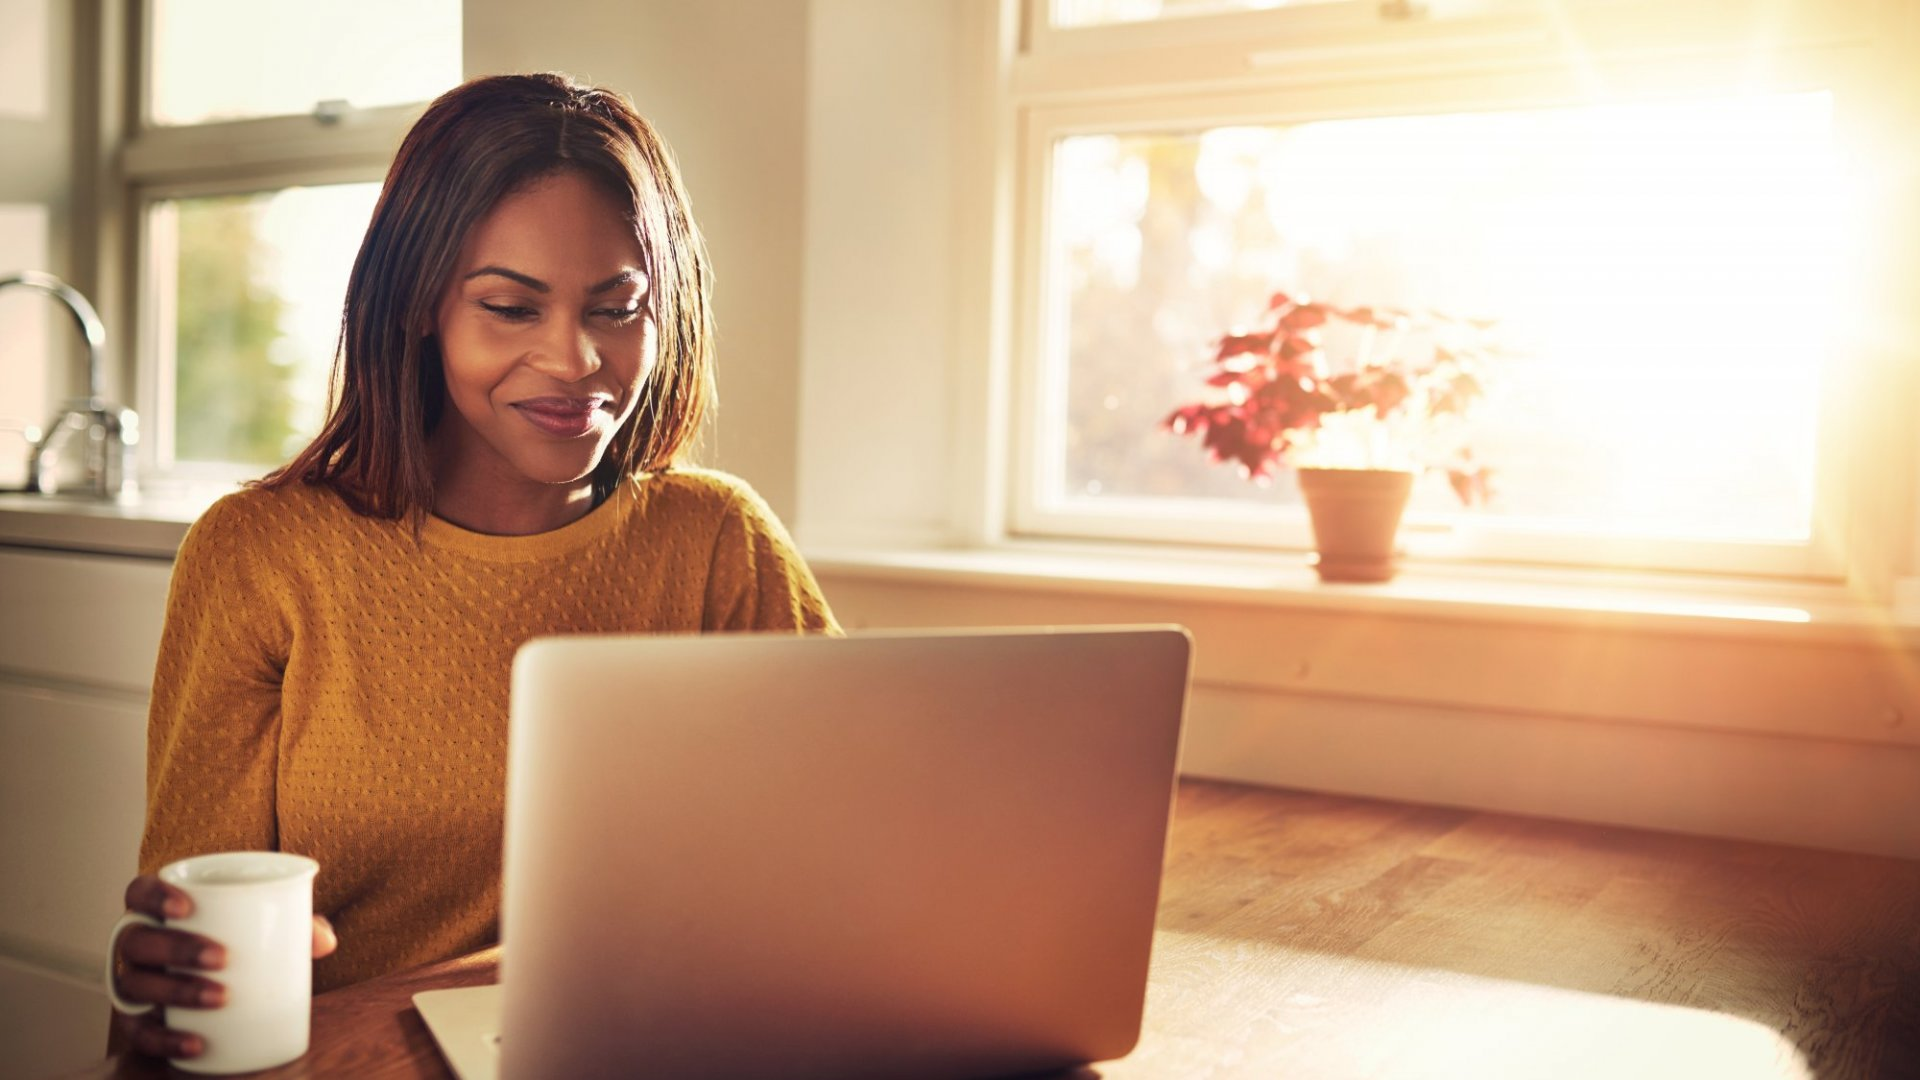 3 Simple Habits to Create Stronger Bonds With Your Remote Team